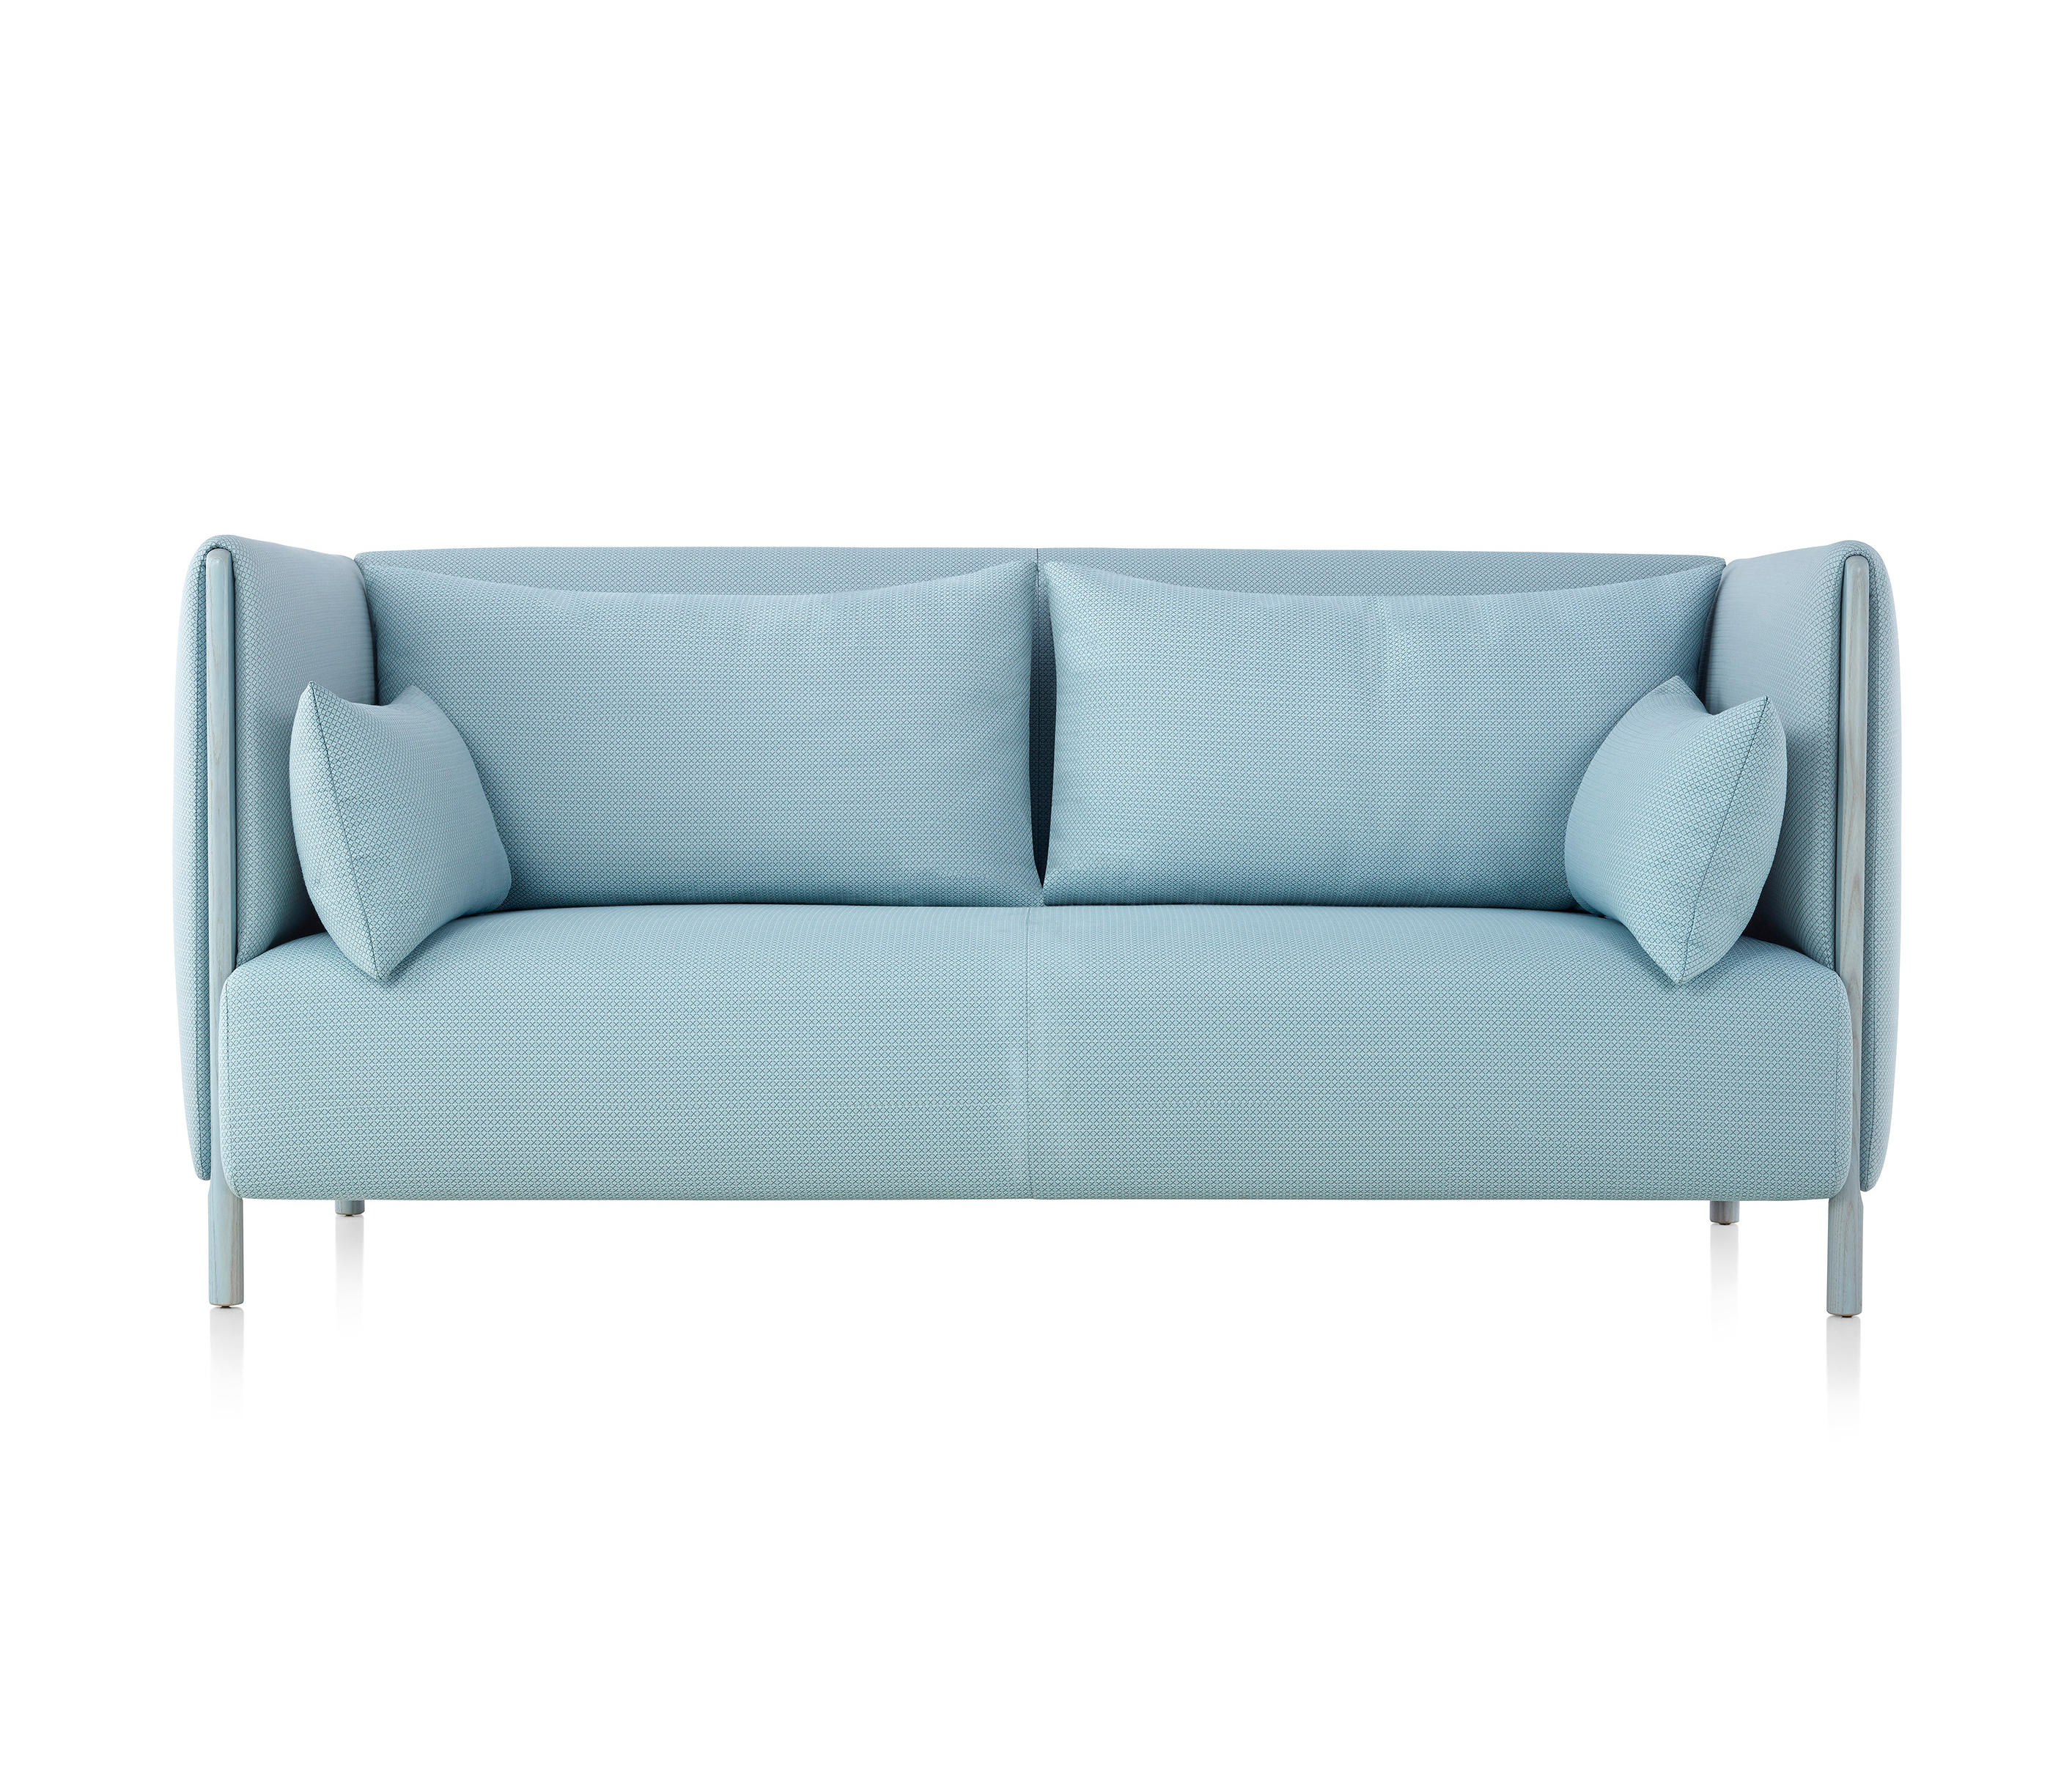 COLOURFORM 2-SEAT SOFA - Sofas from Herman Miller | Architonic